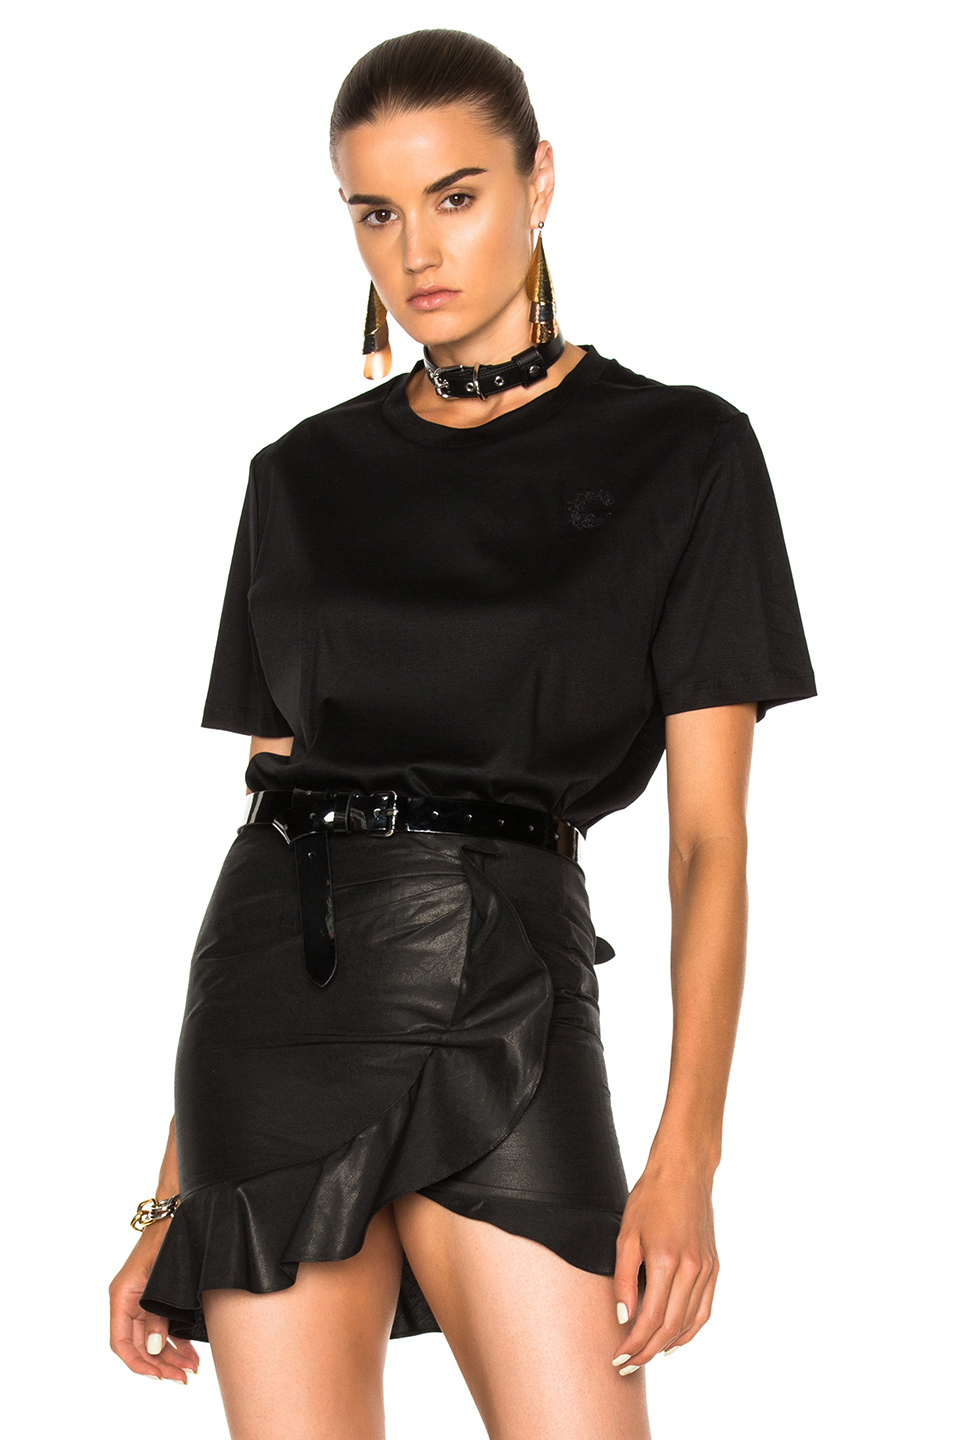 Carven Tee Shirt in Black